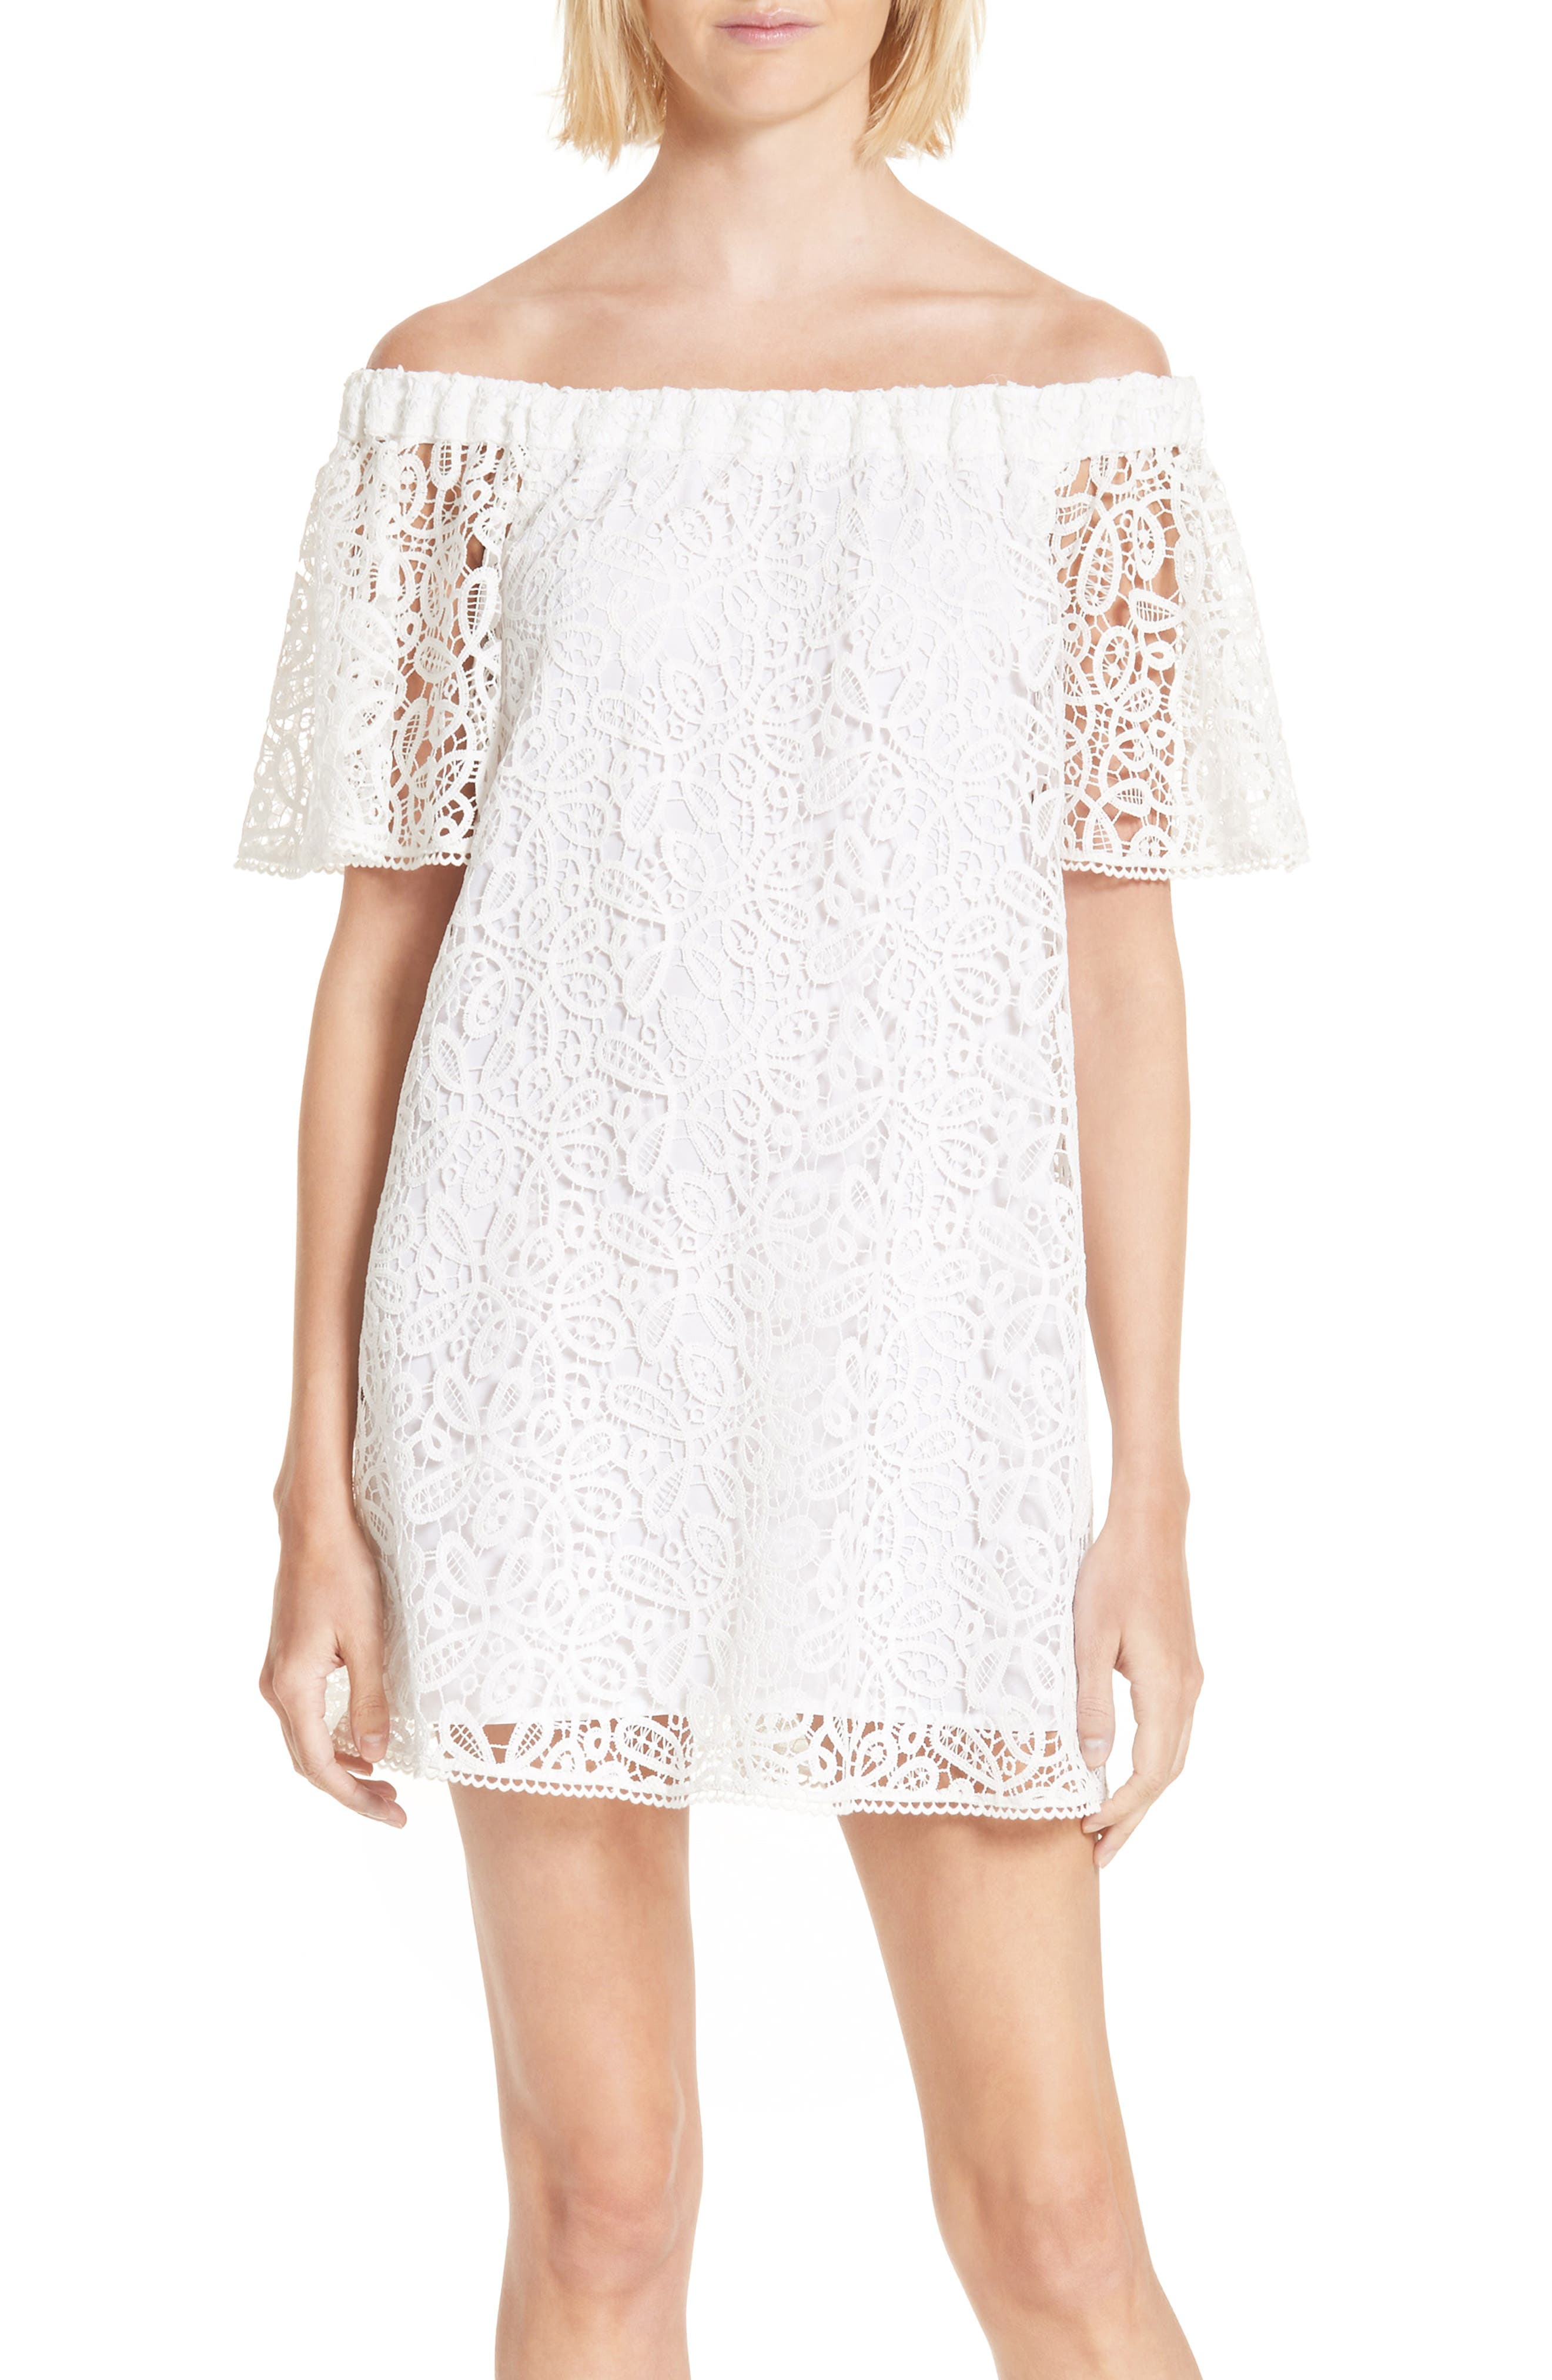 Rebecca Minkoff Morongo Lace Minidress